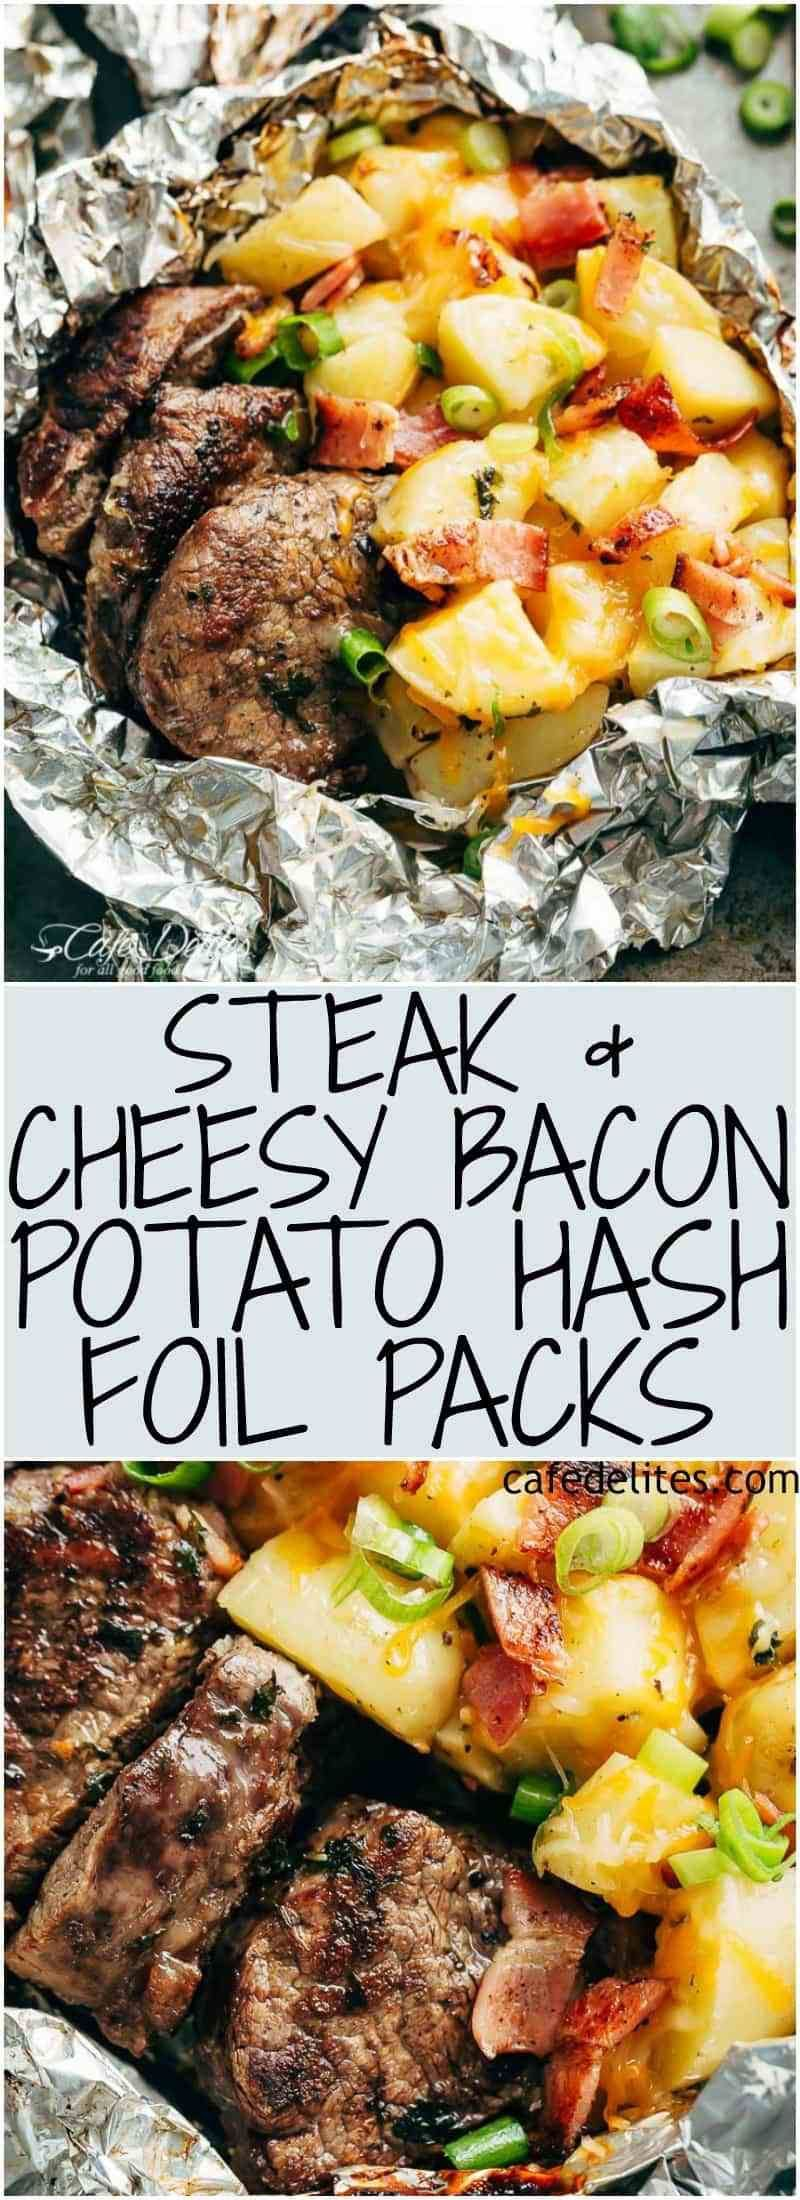 Photo of Steak & Cheesy Bacon Potato Hash Foil Packs can be cooked on the grill, stove to…